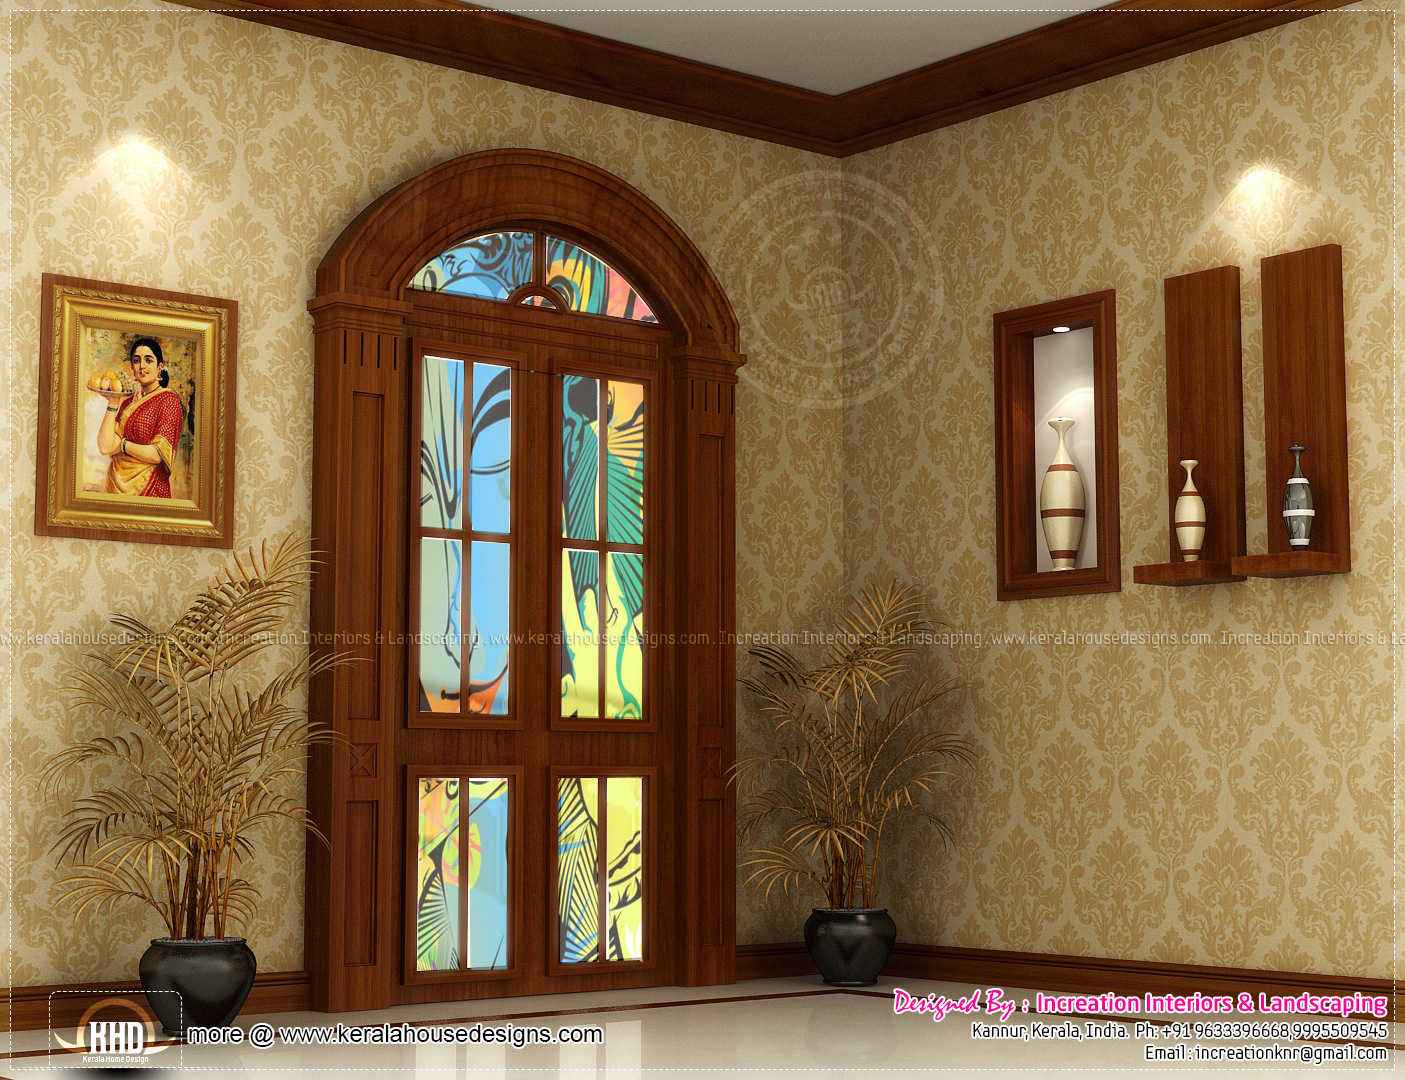 Foyer Plan Kerala : Interior designs by increation kannur kerala home